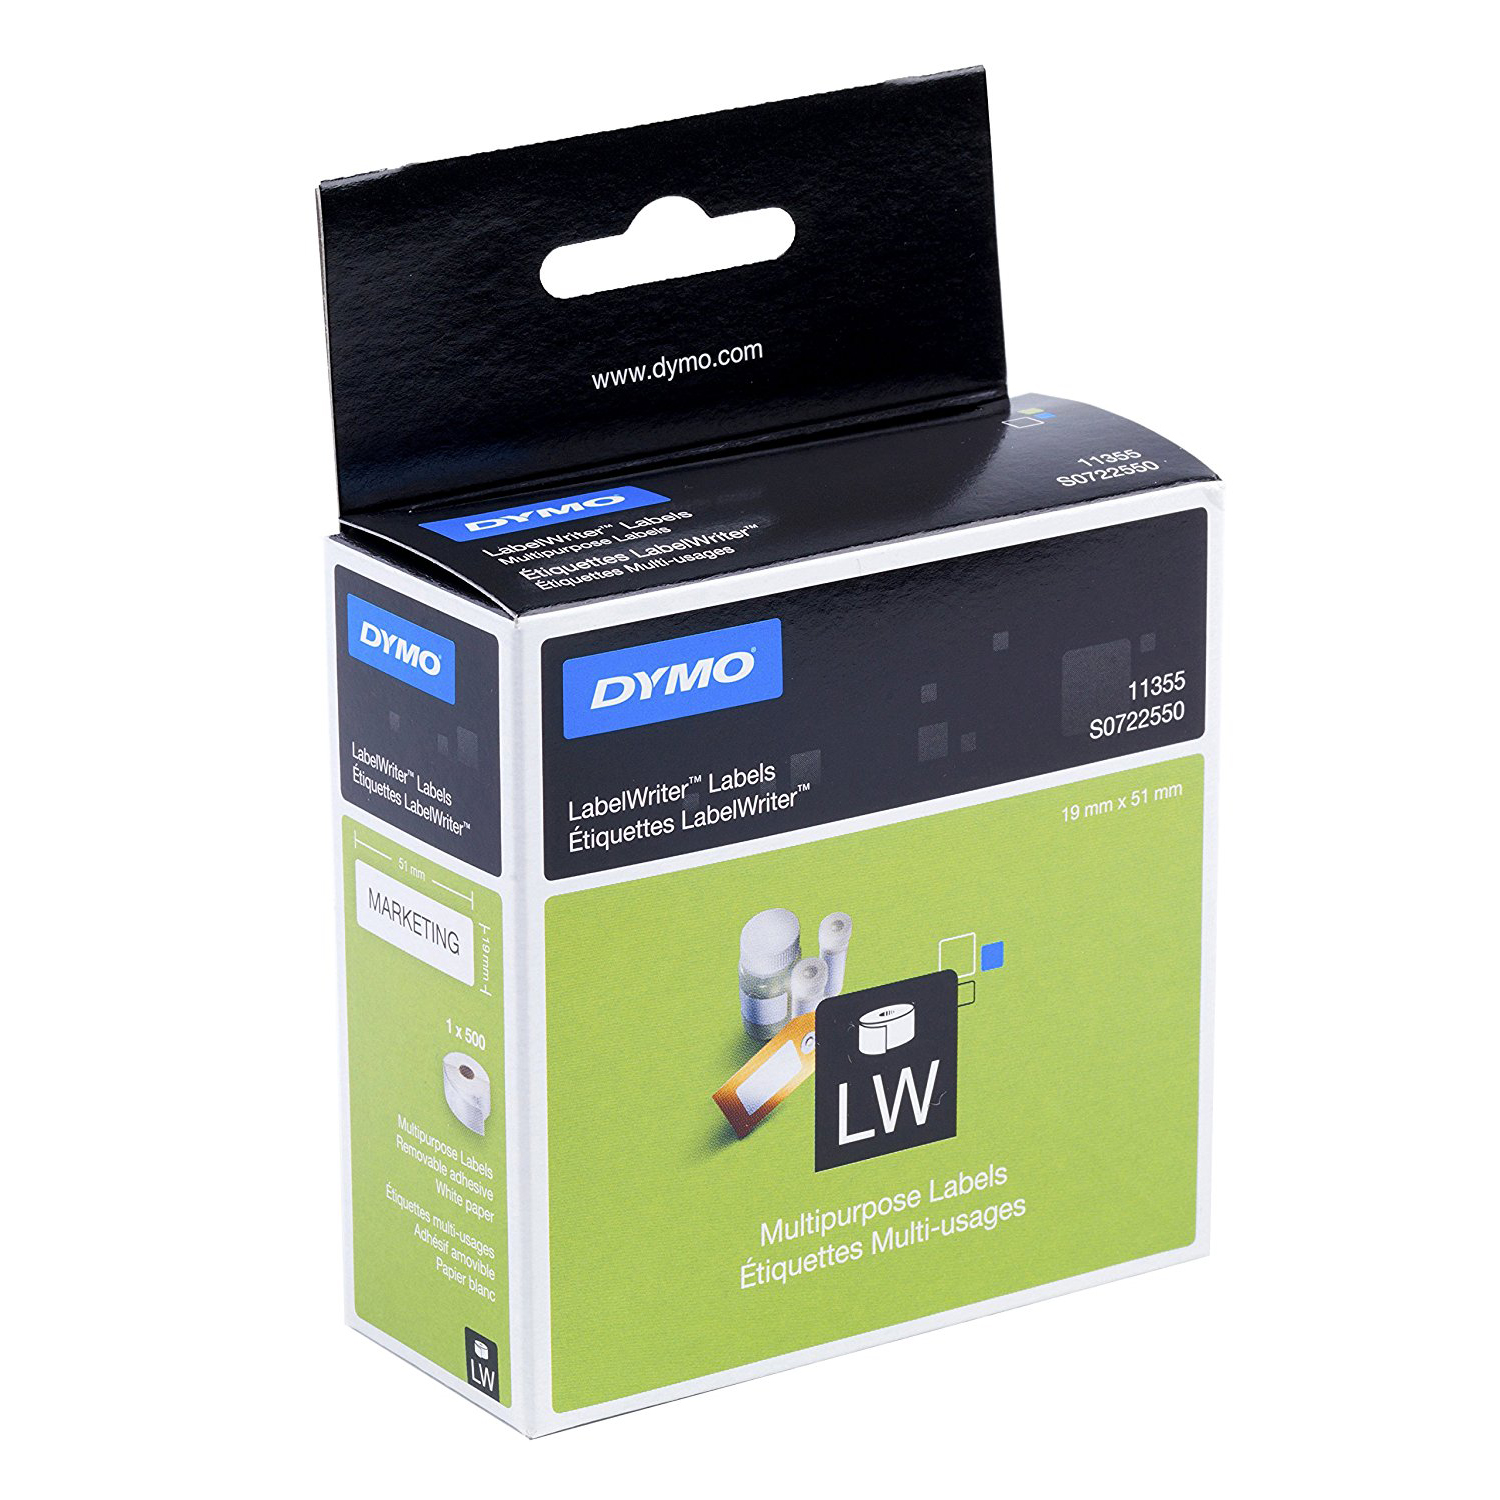 Dymo S0722550 LabelWriter Multi-Purpose Labels 19mm x 51mm - Black Print on White (roll)